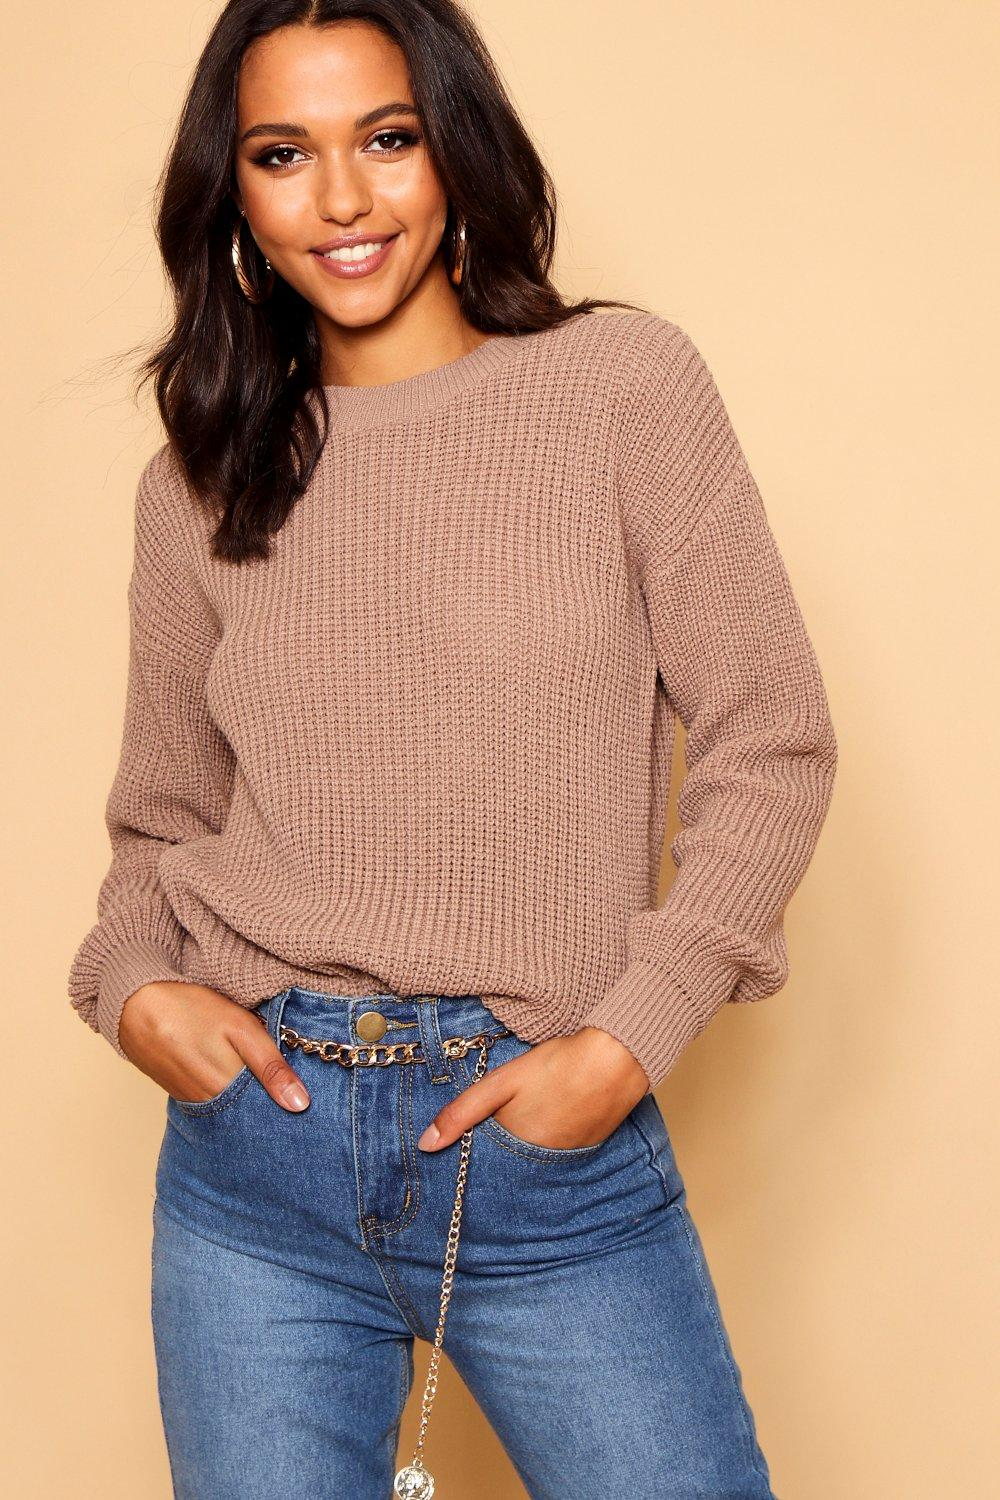 Womens Oversized-Pullover - Taupe - S, Taupe - Boohoo.com